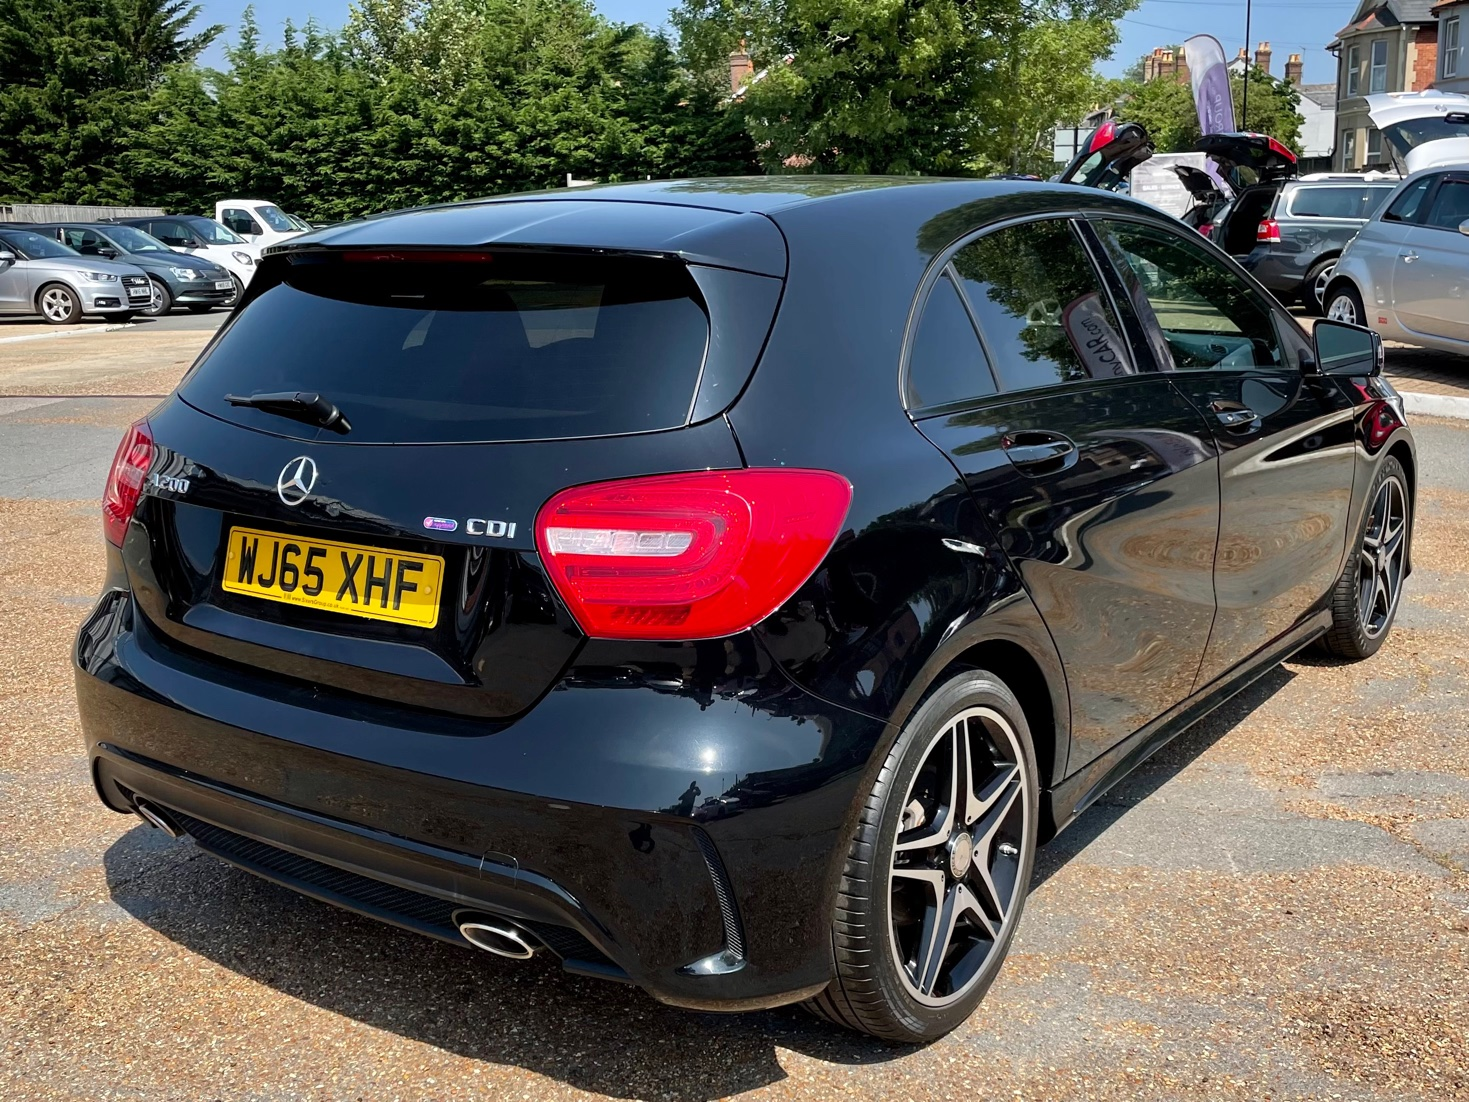 Car For Sale Mercedes A Class - WJ65XHF Sixers Group Image #2